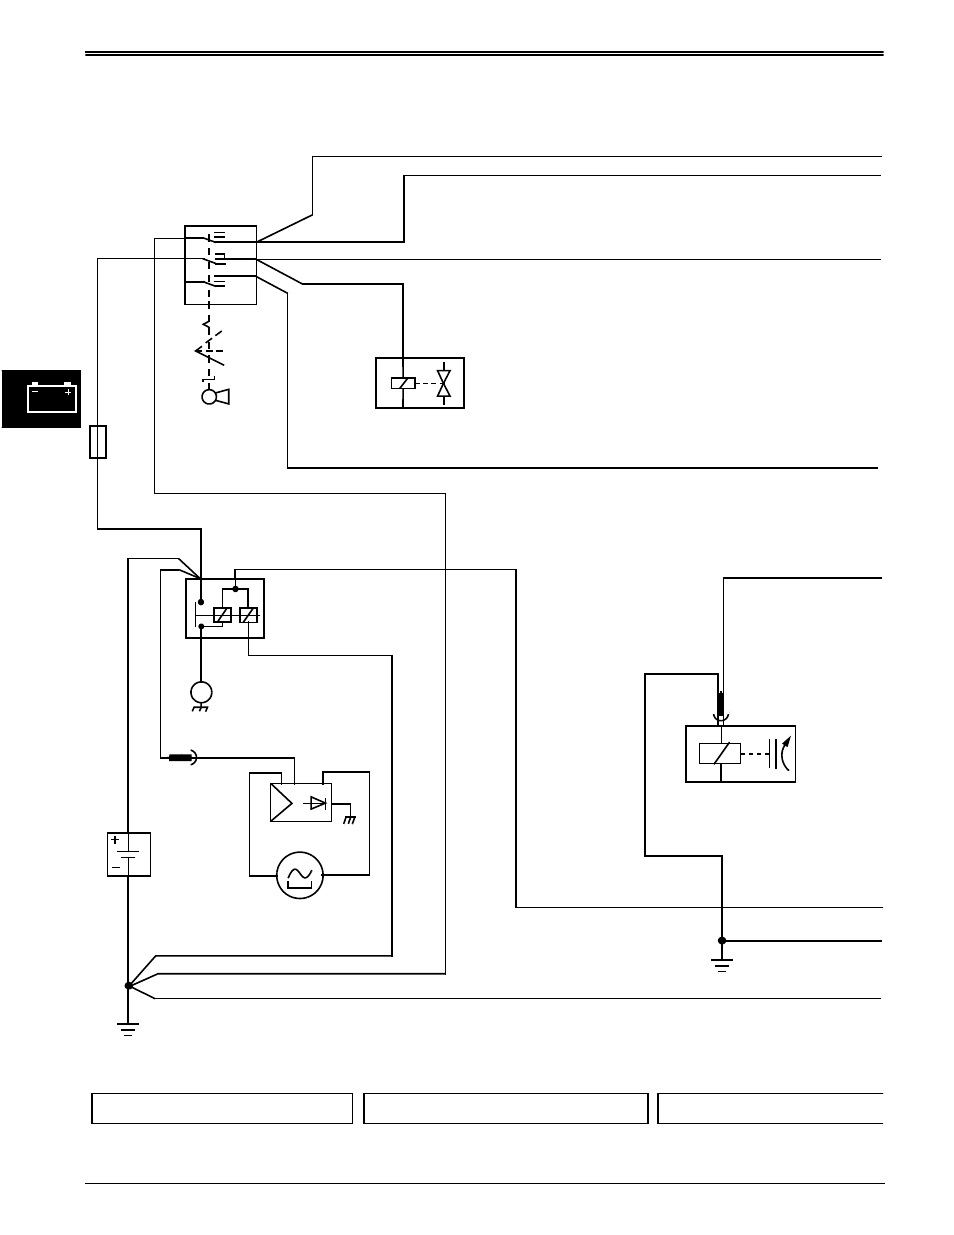 Stx 38 Wiring Diagram | Wiring Diagram John Deere Mower Wiring Diagram on